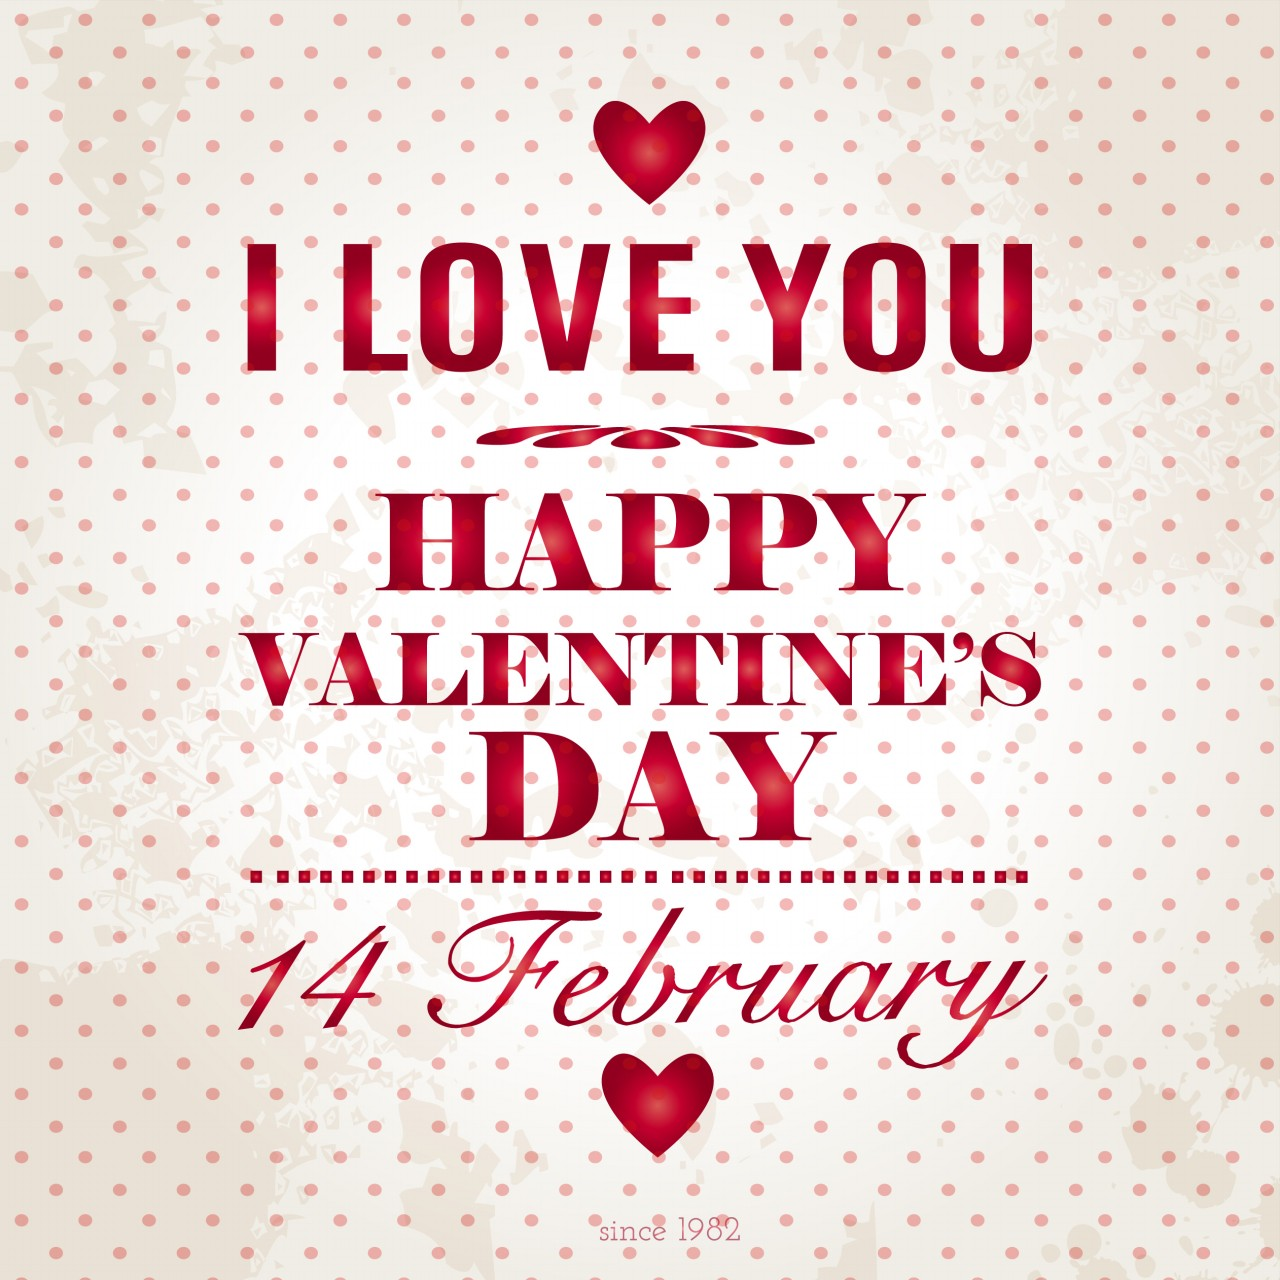 I Love You Quotes Valentines Day : ... meet you in my journey in life. I love you, Happy Valentines Day